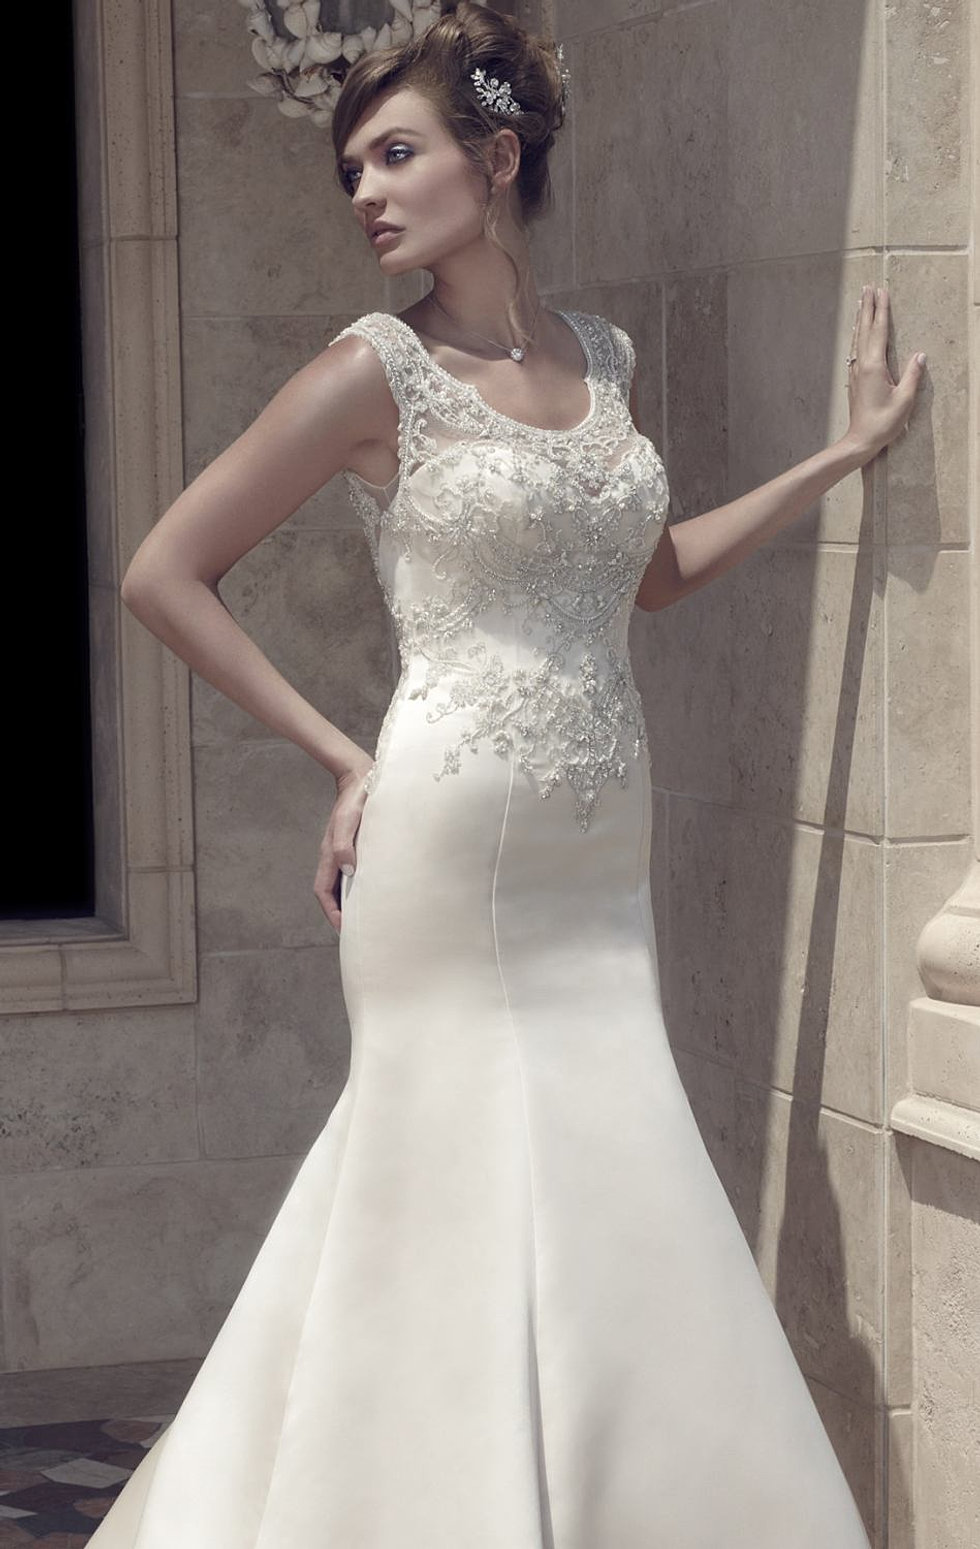 Discounted Designer Wedding Gowns Marianne's Bridal Outlet MA